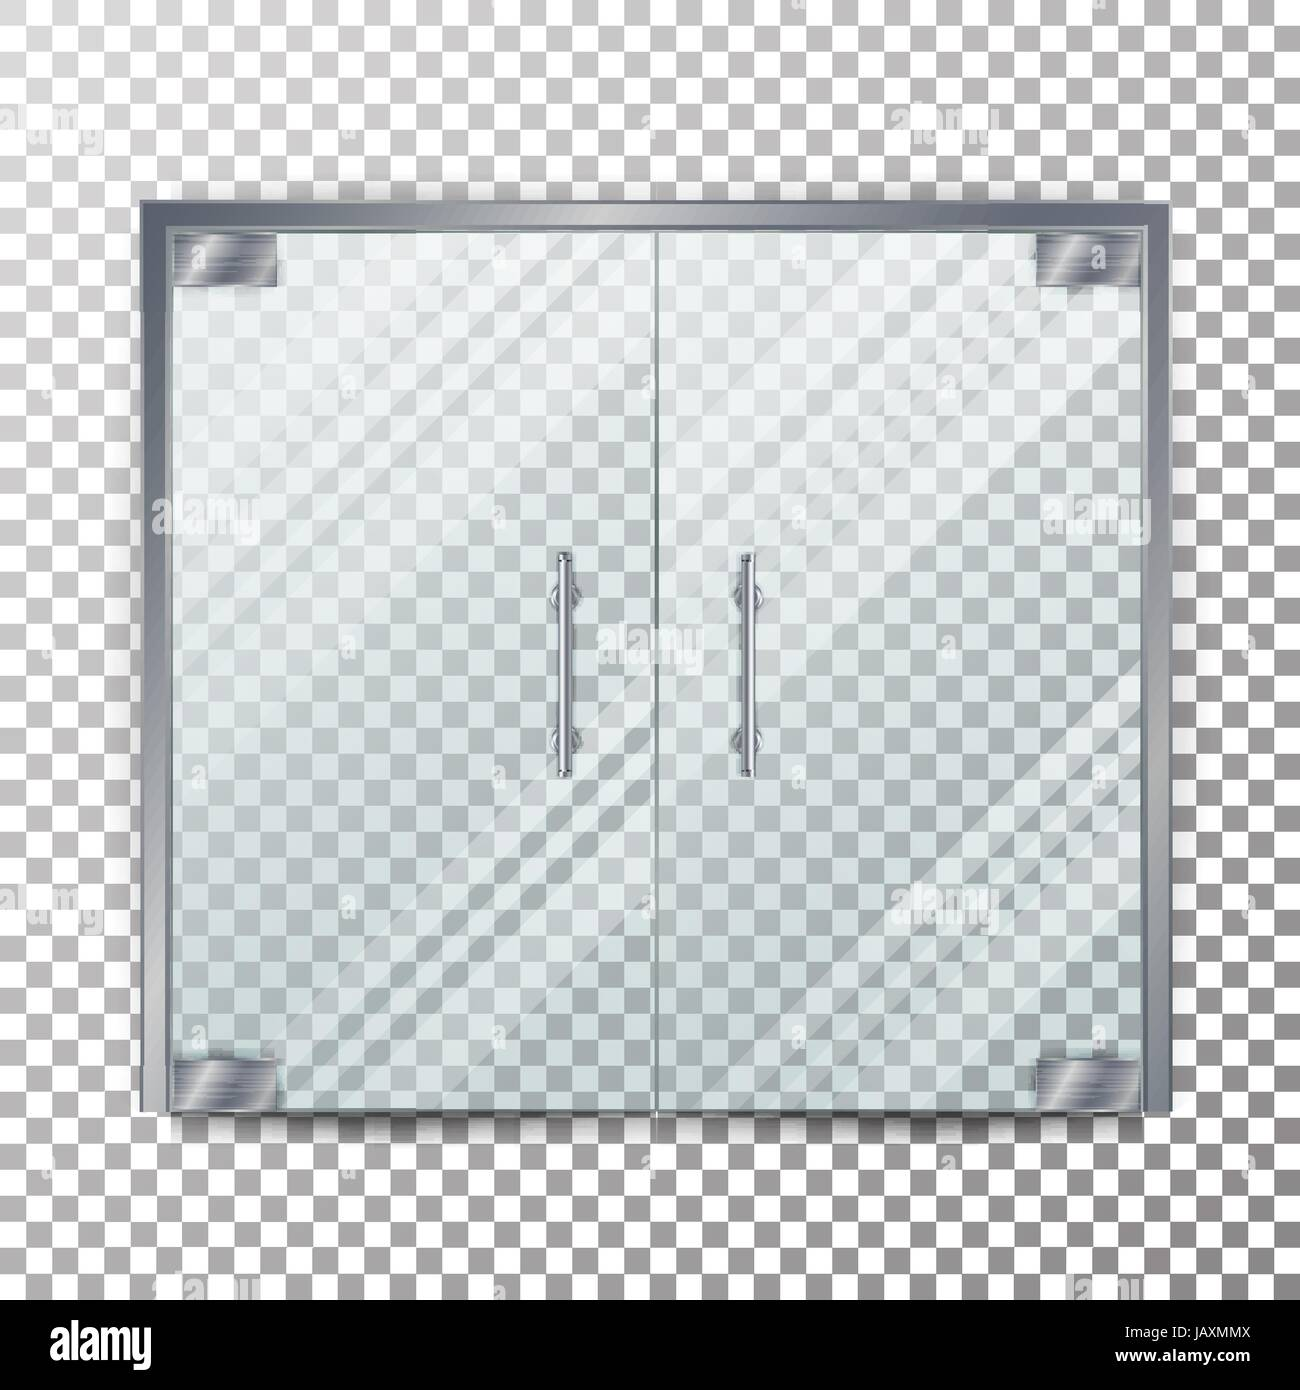 Glass Door Transparent Vector. Clear Glass Door Isolated On Transparent  Checkered Background. Mock Up